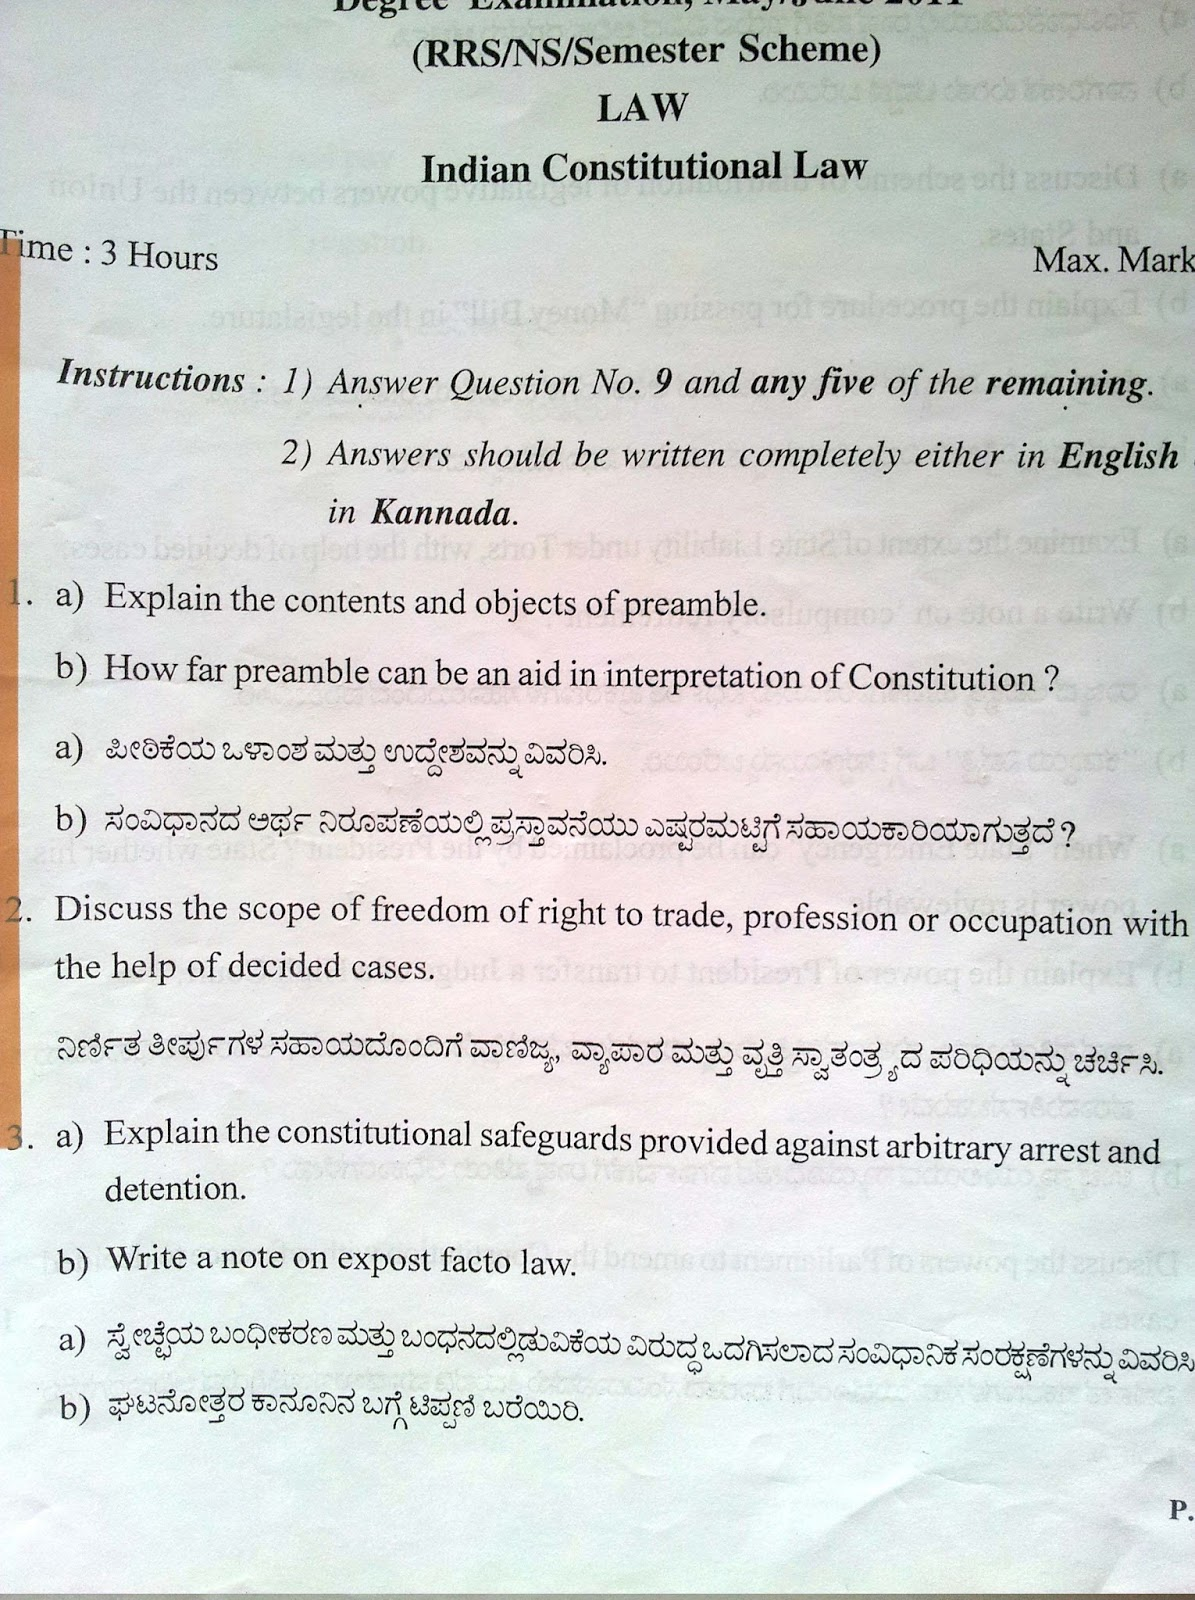 Law Student in Action: SOME CONSTITUTIONAL LAW QUESTION PAPERS